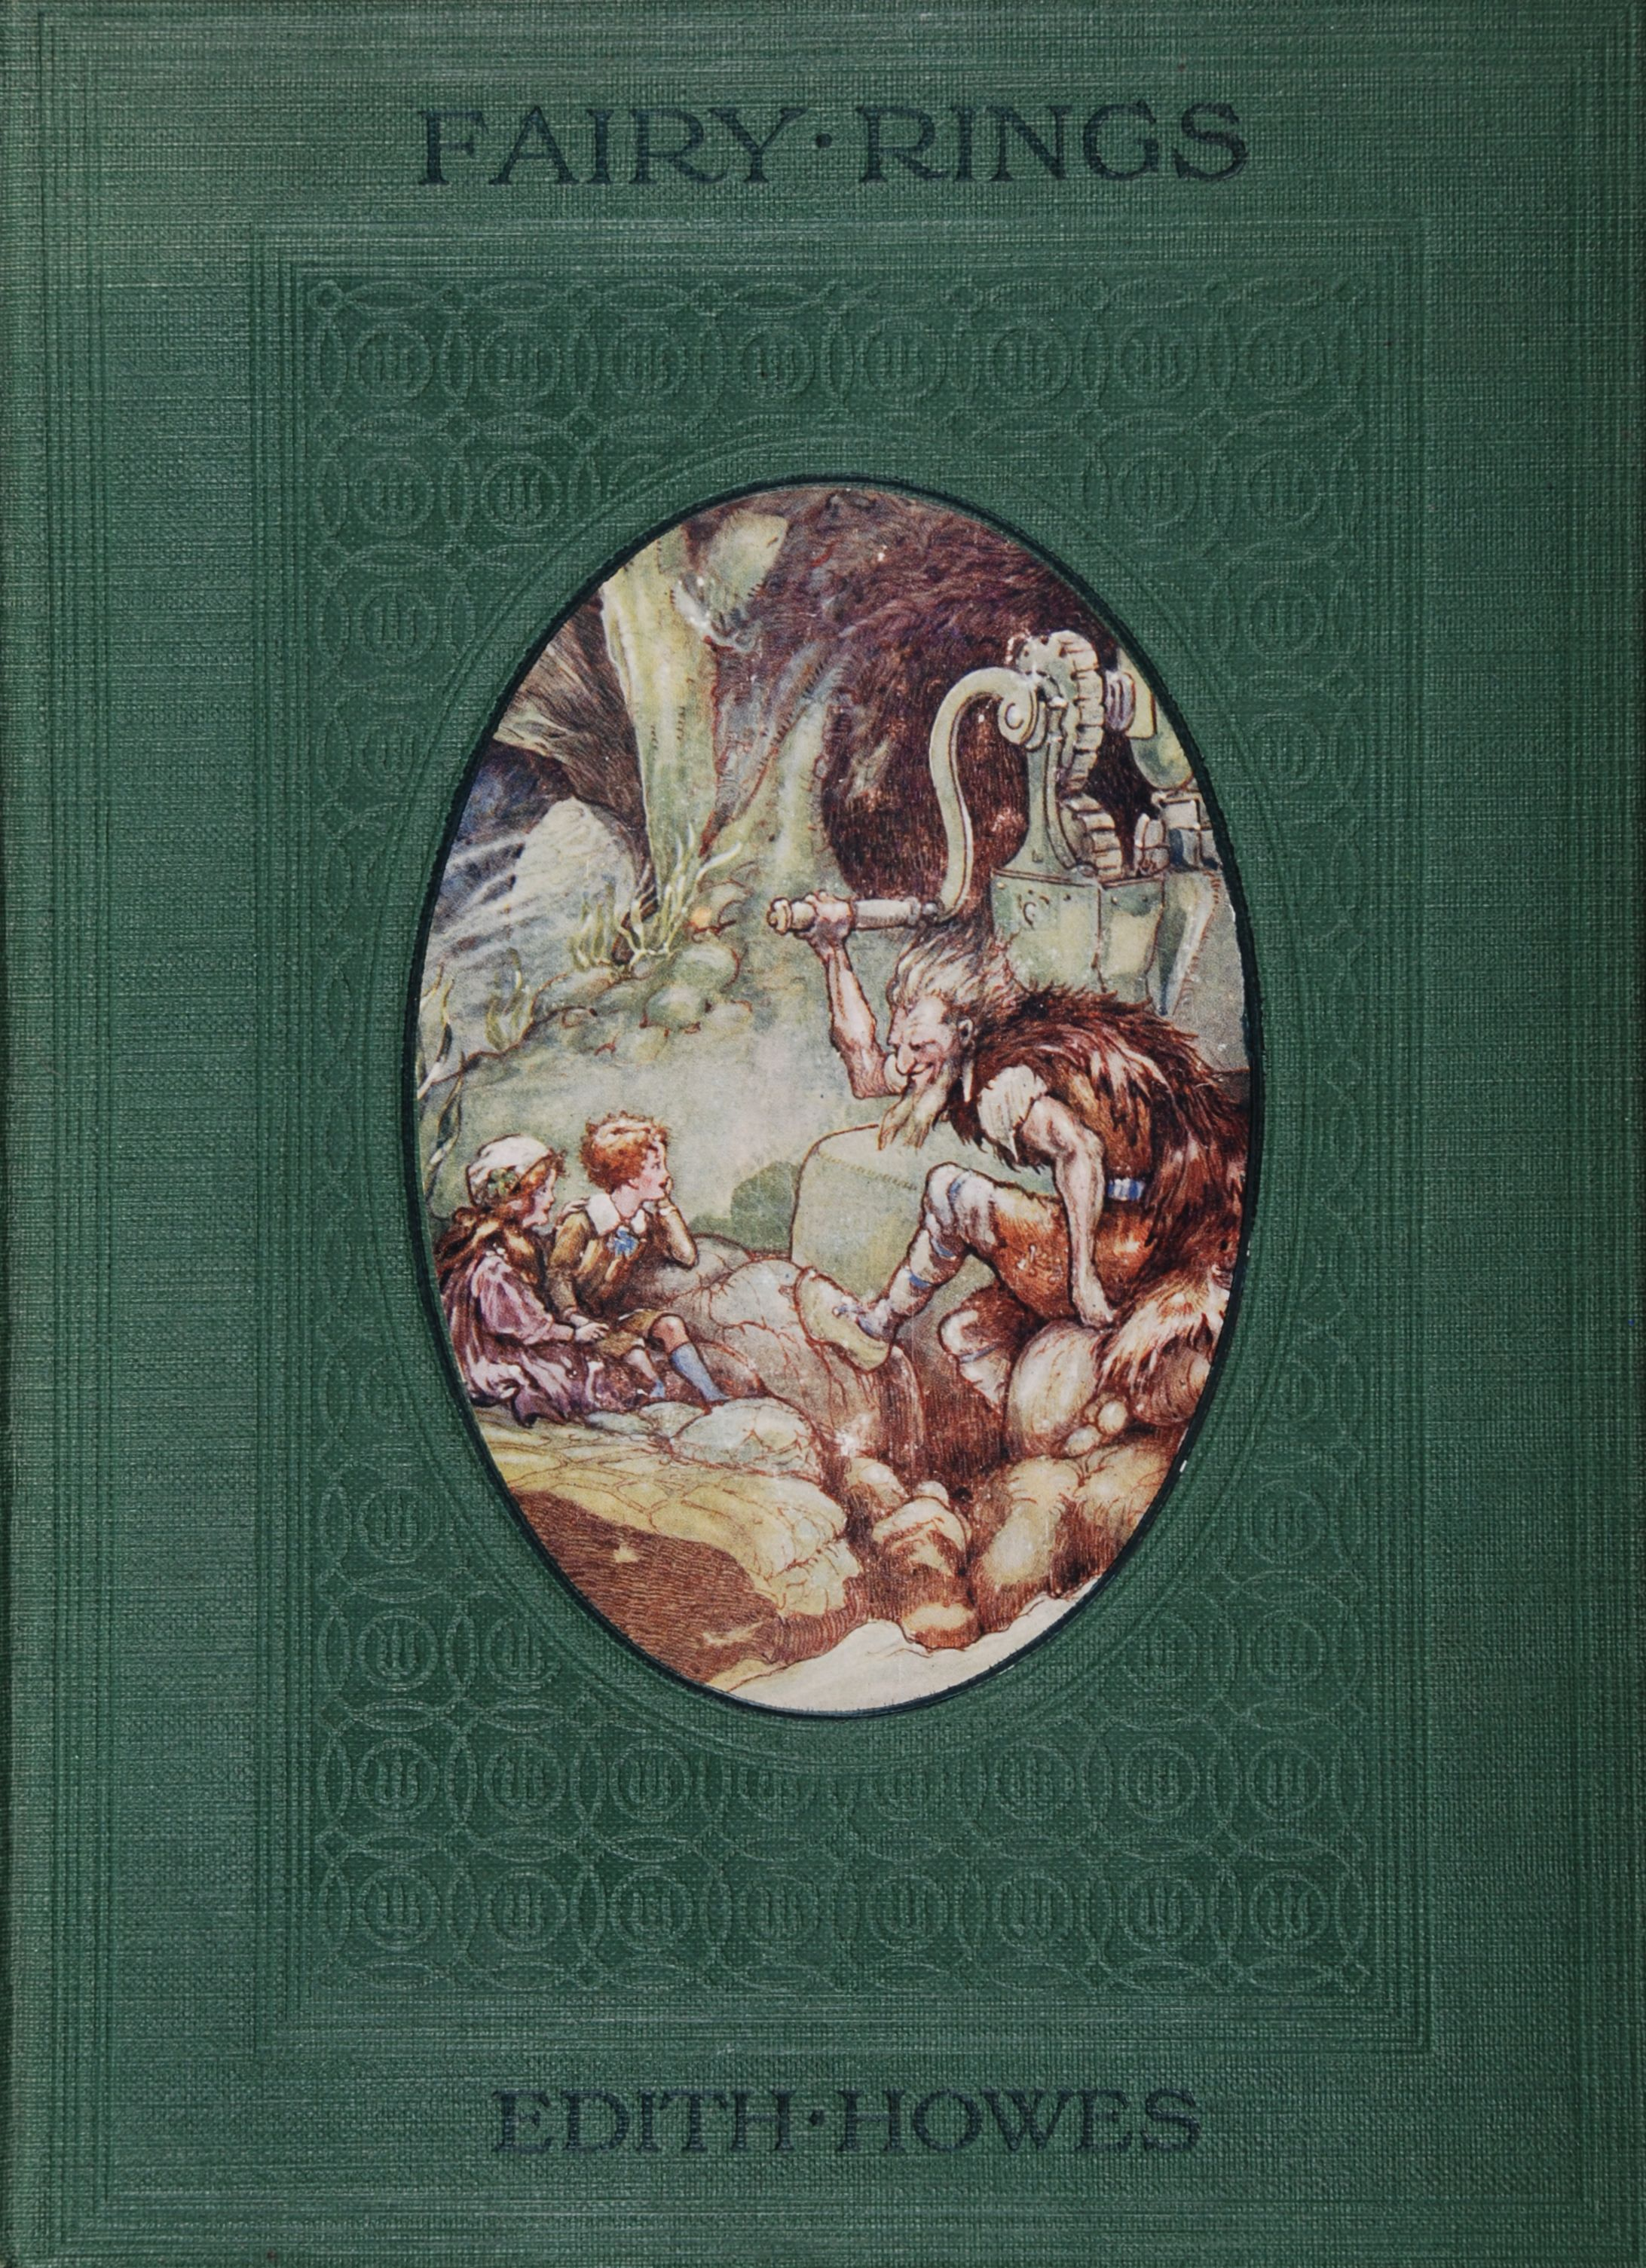 Edith Howes. Fairy rings. London, Cassell and Company, 1911.